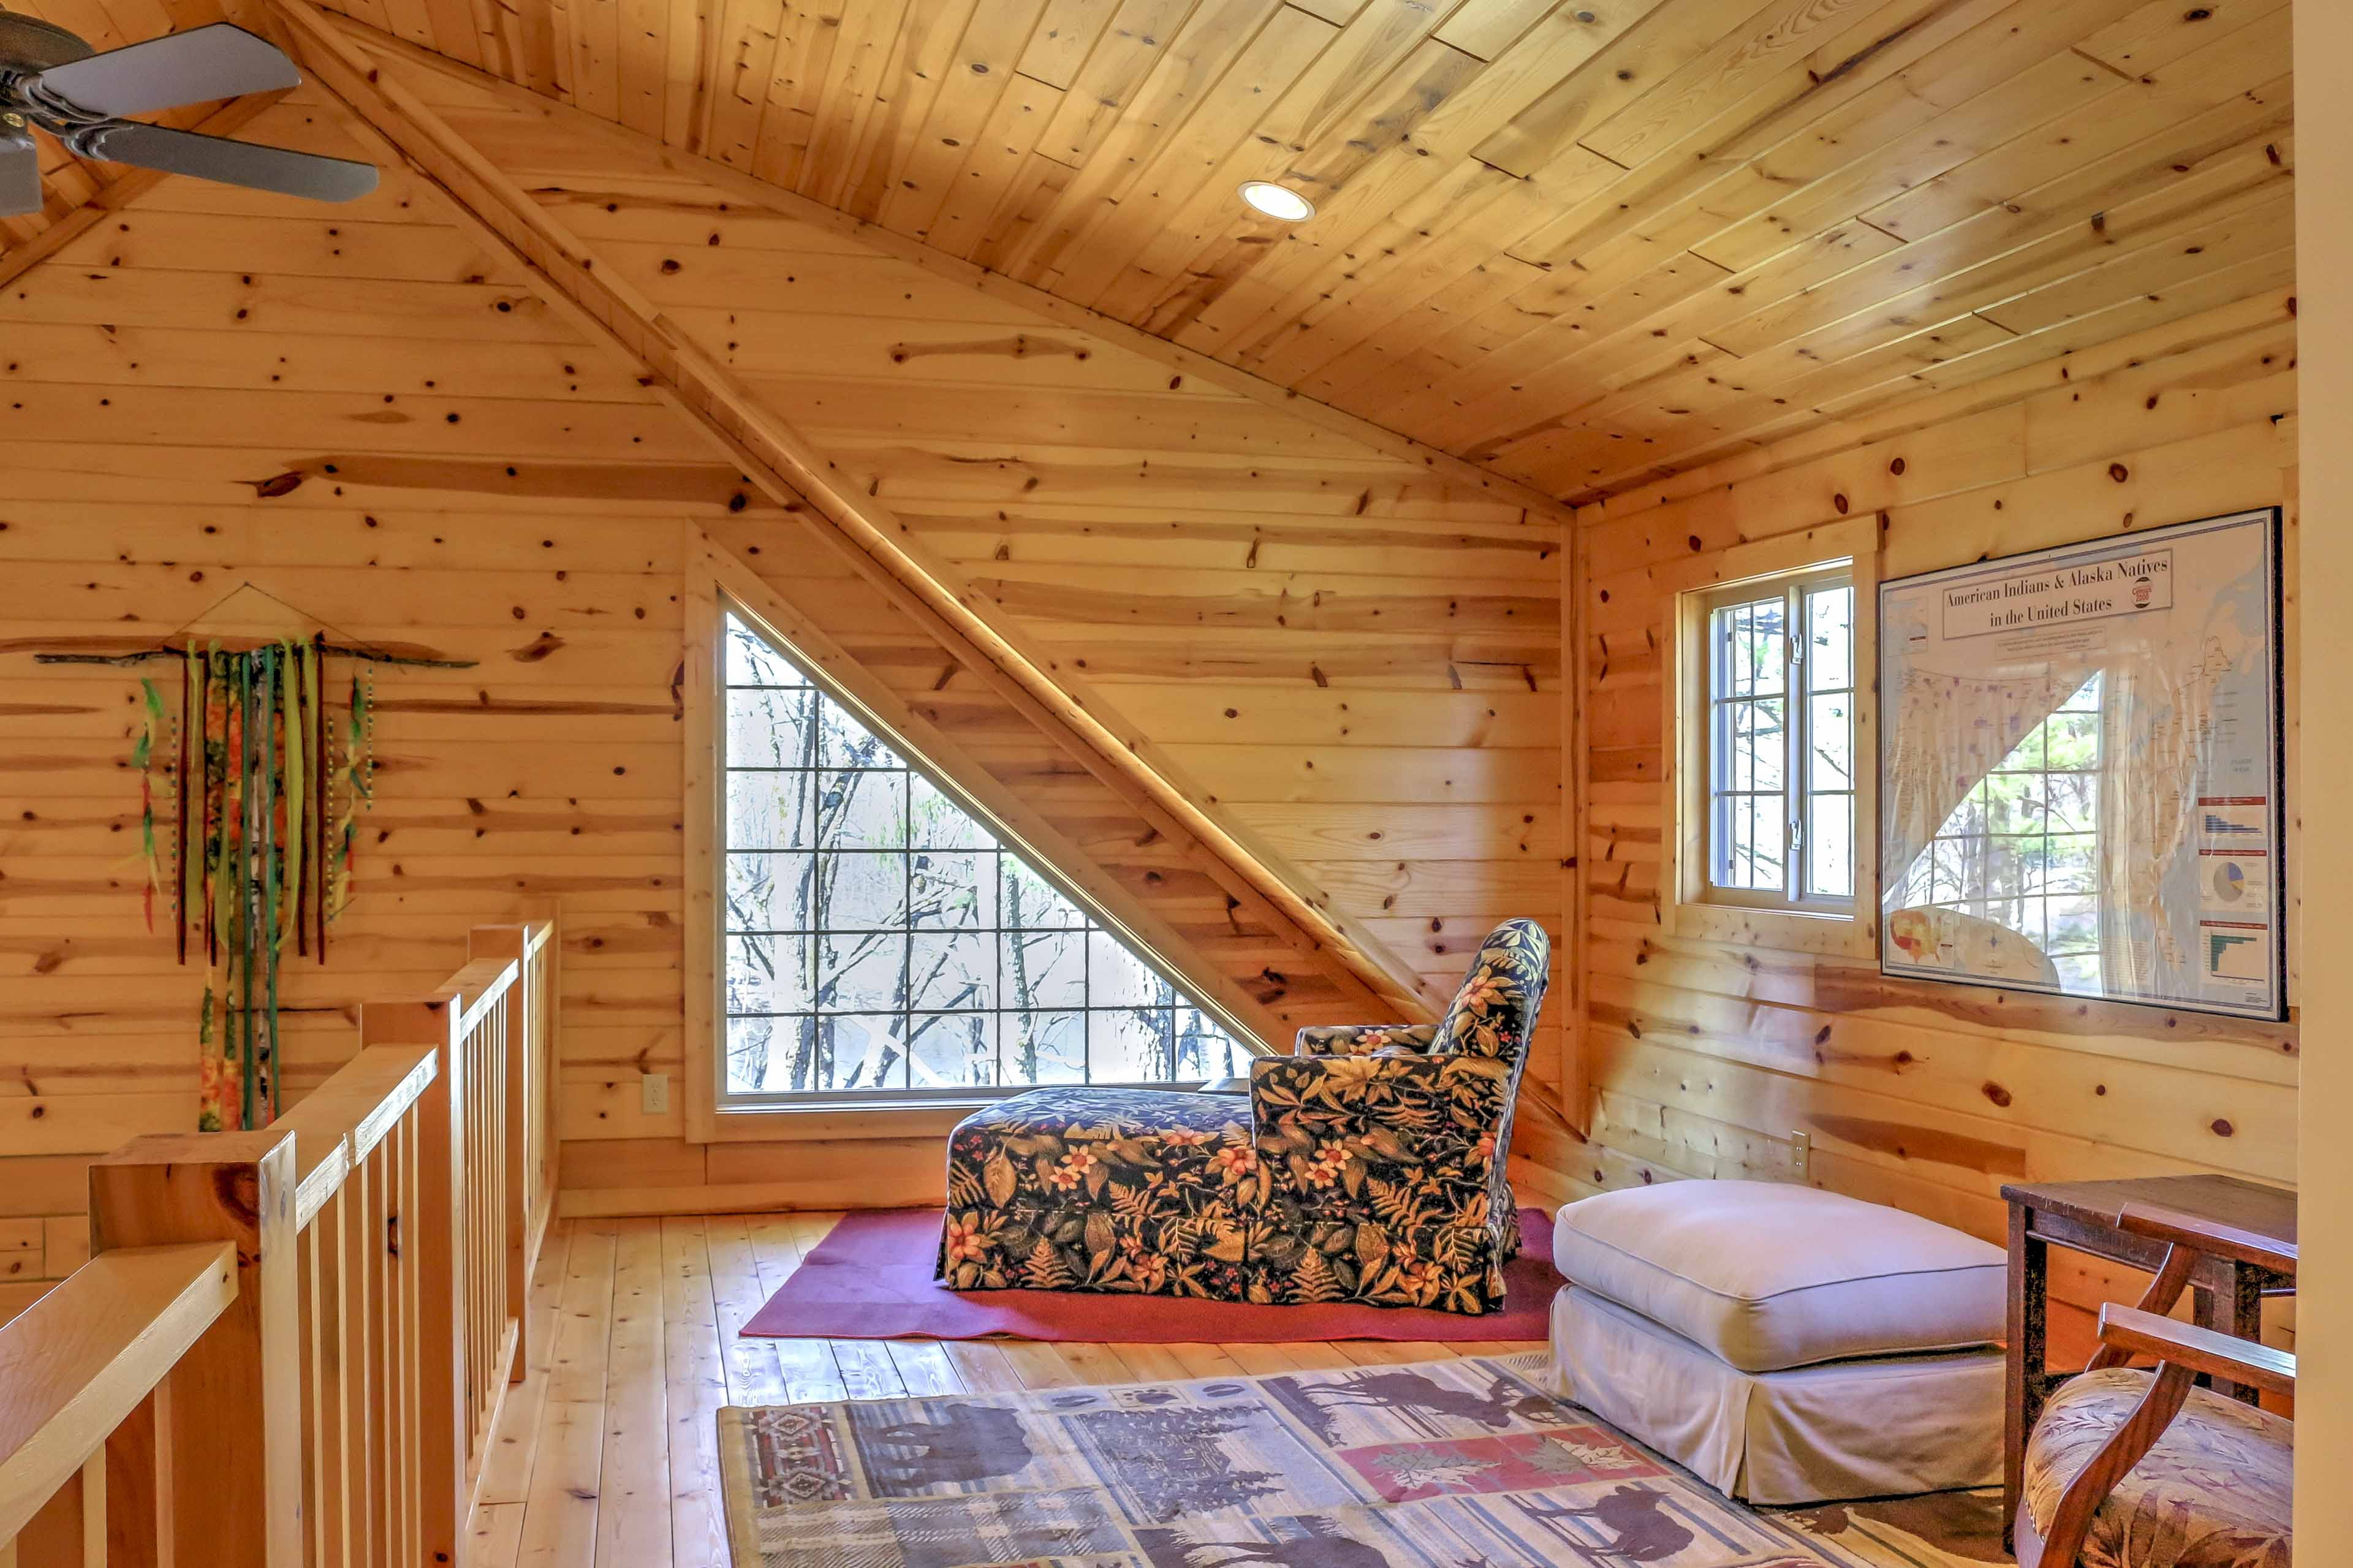 Enjoy quiet time reading in the loft.